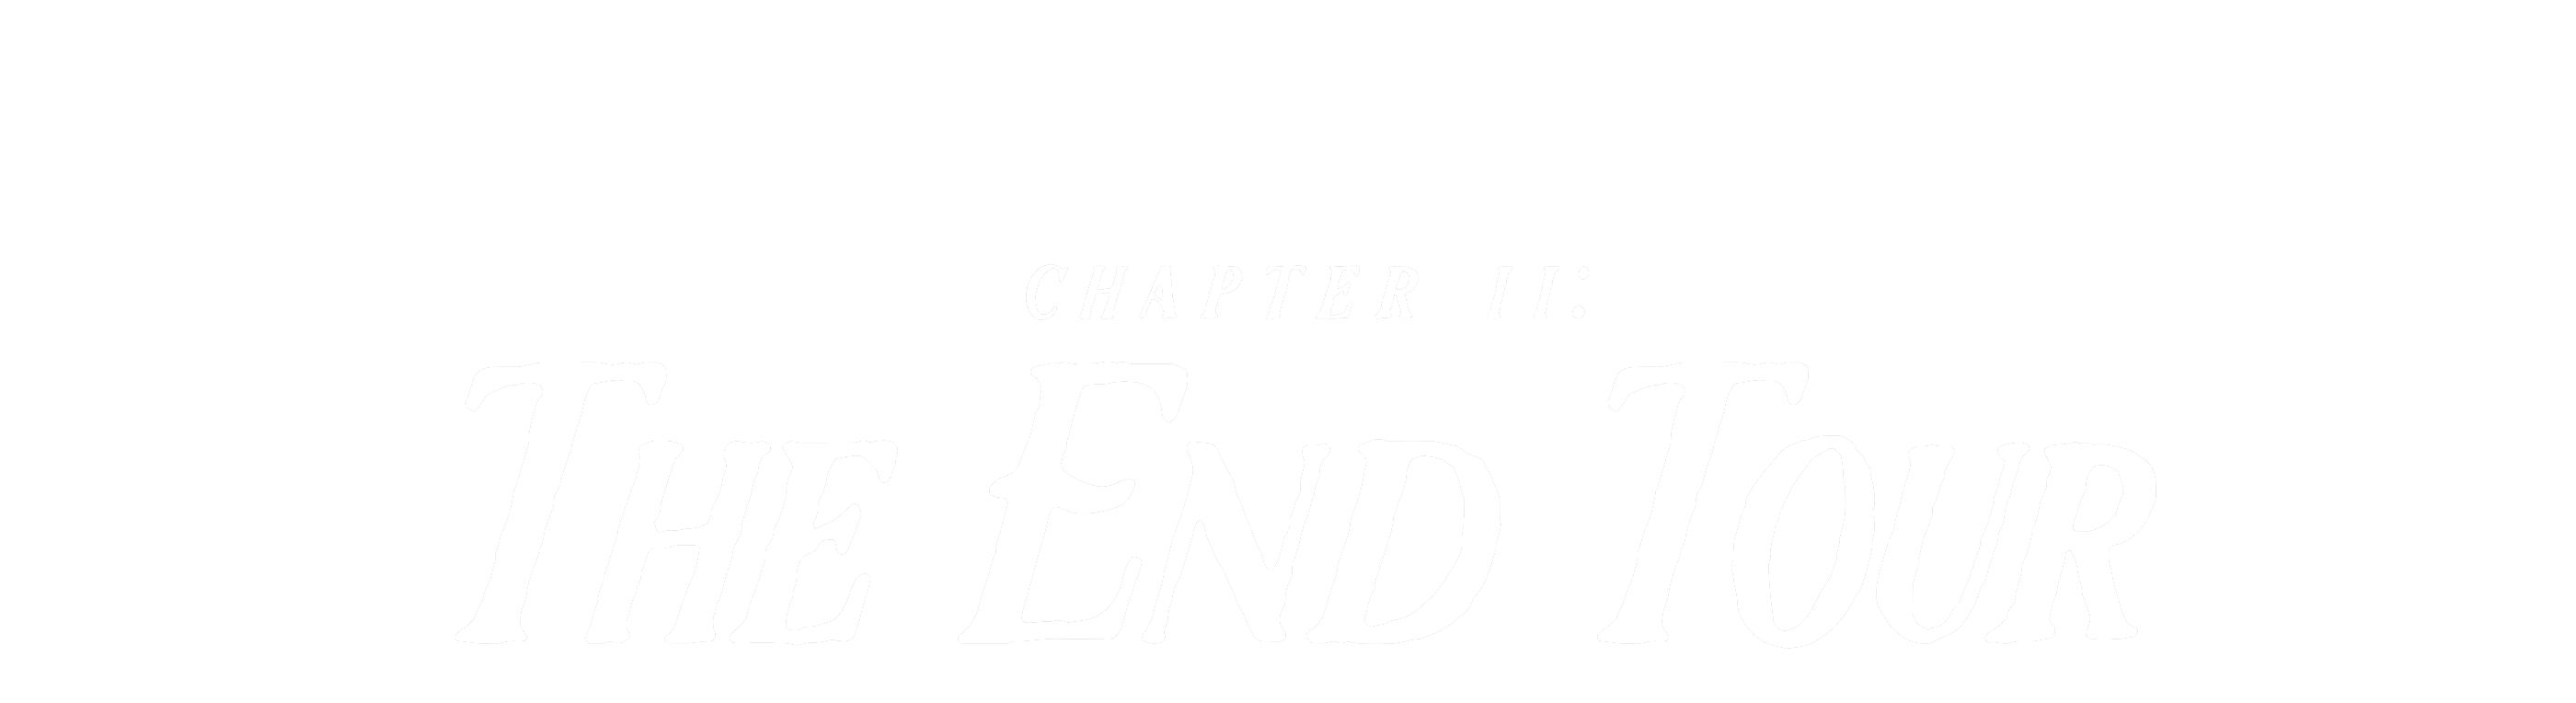 Chapter II: The End Tour